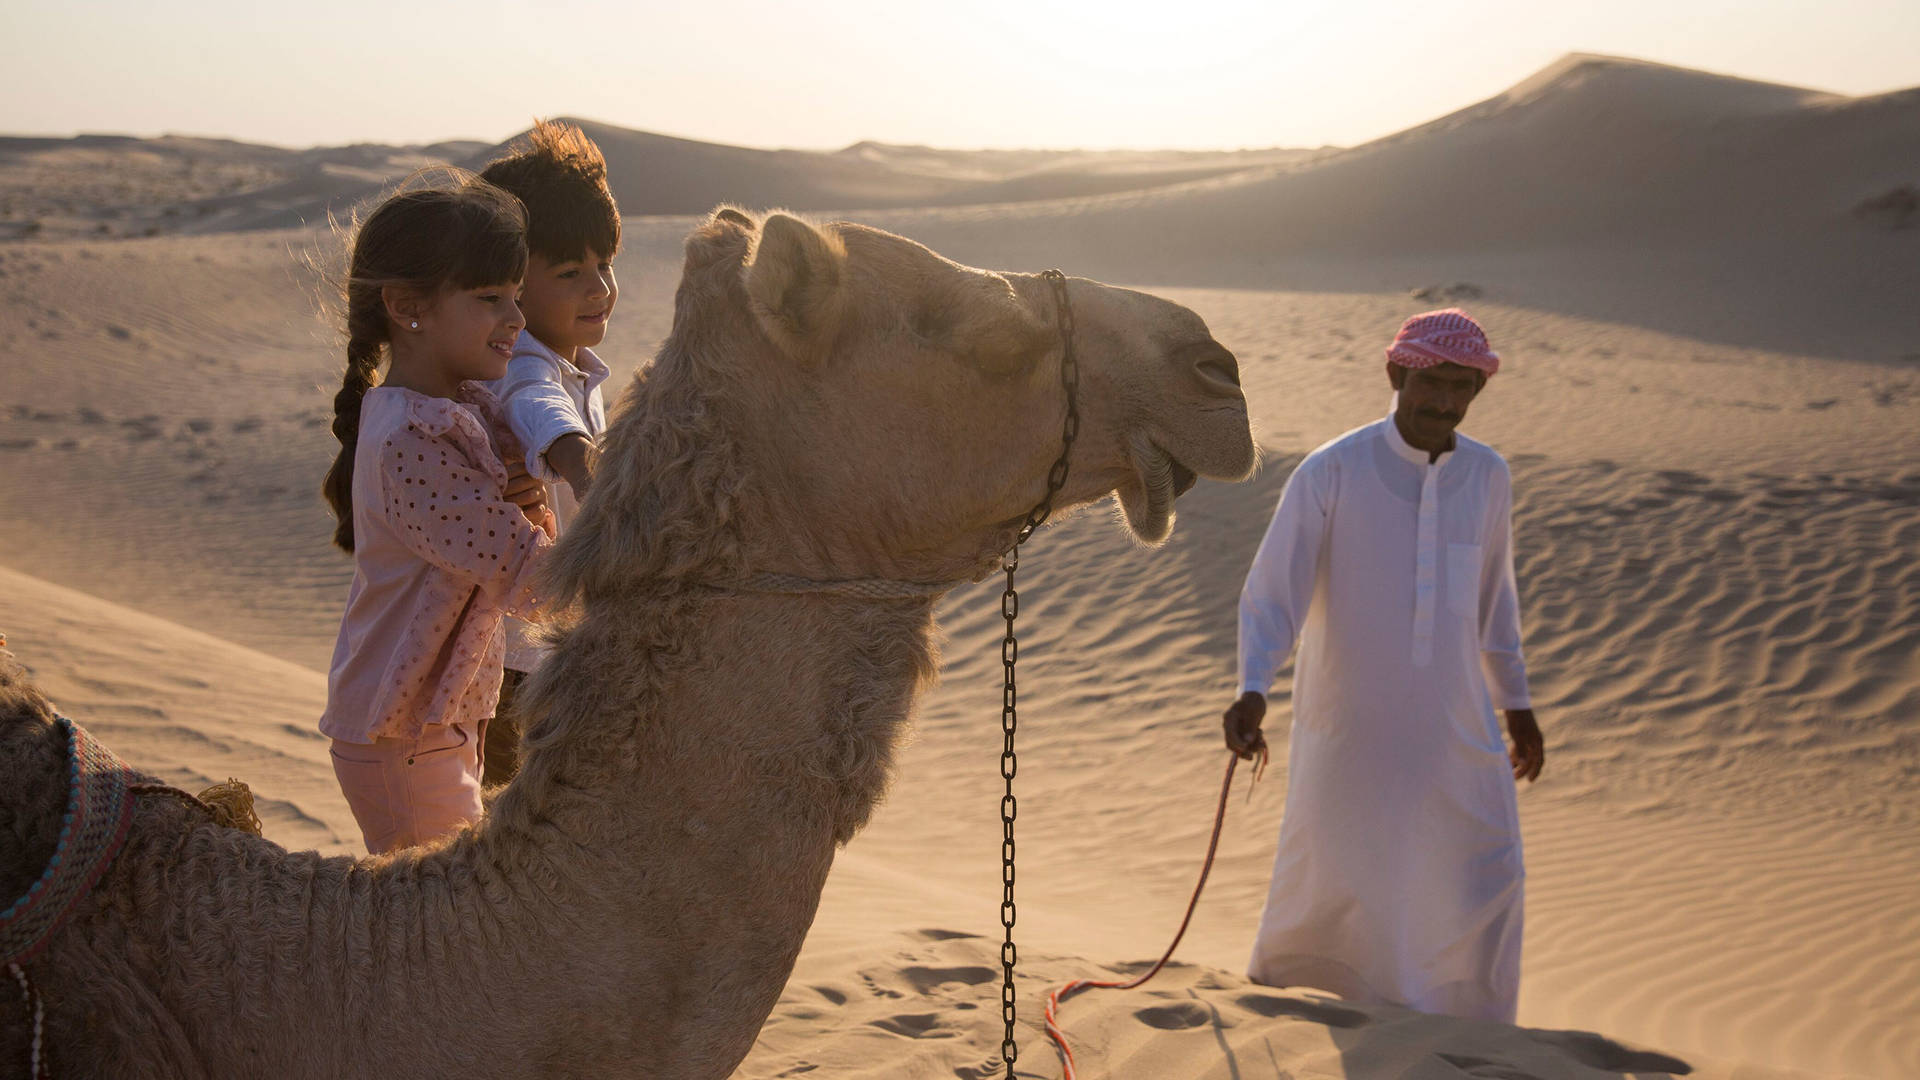 Children and a camel